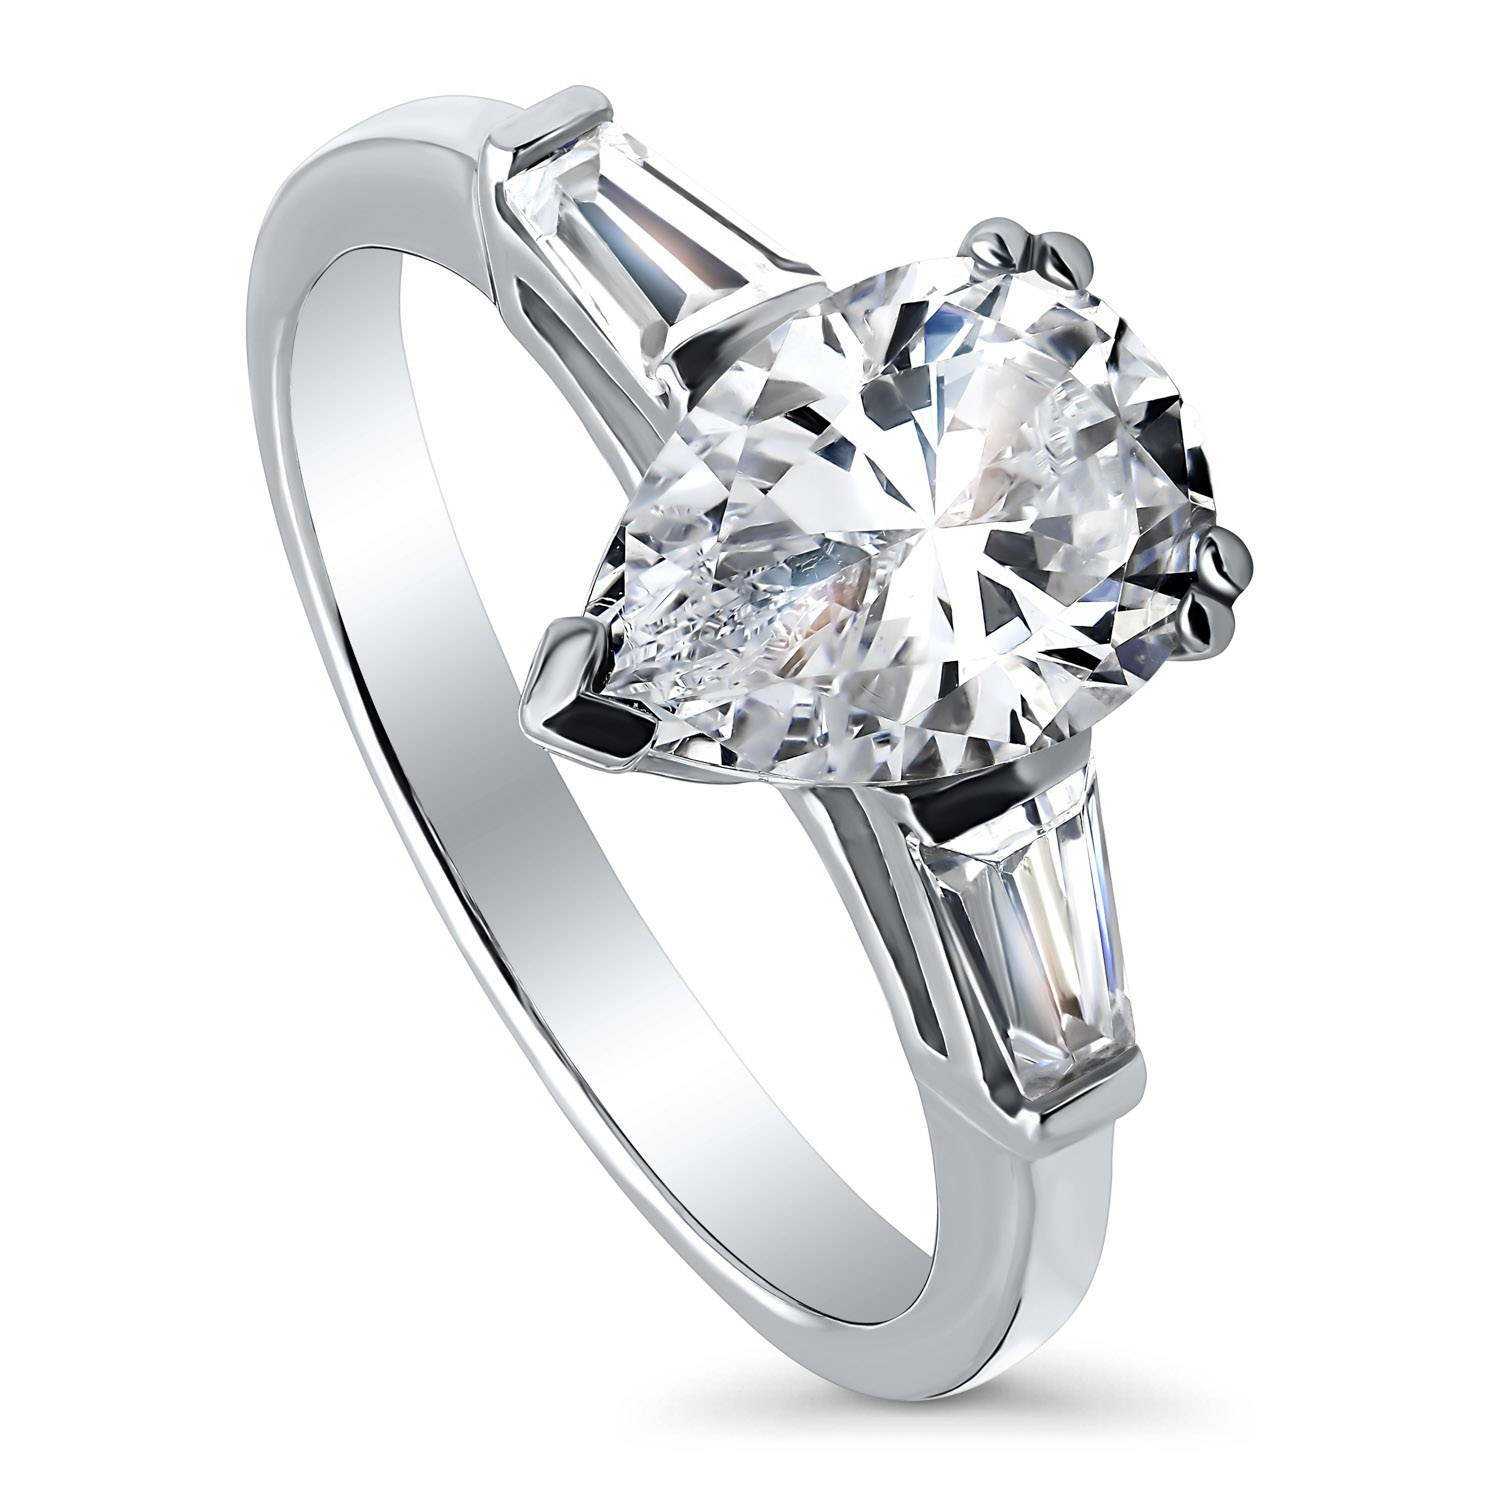 BERRICLE Rhodium Plated Sterling Silver Pear Cut Cubic Zirconia CZ 3-Stone Engagement Ring Size 5